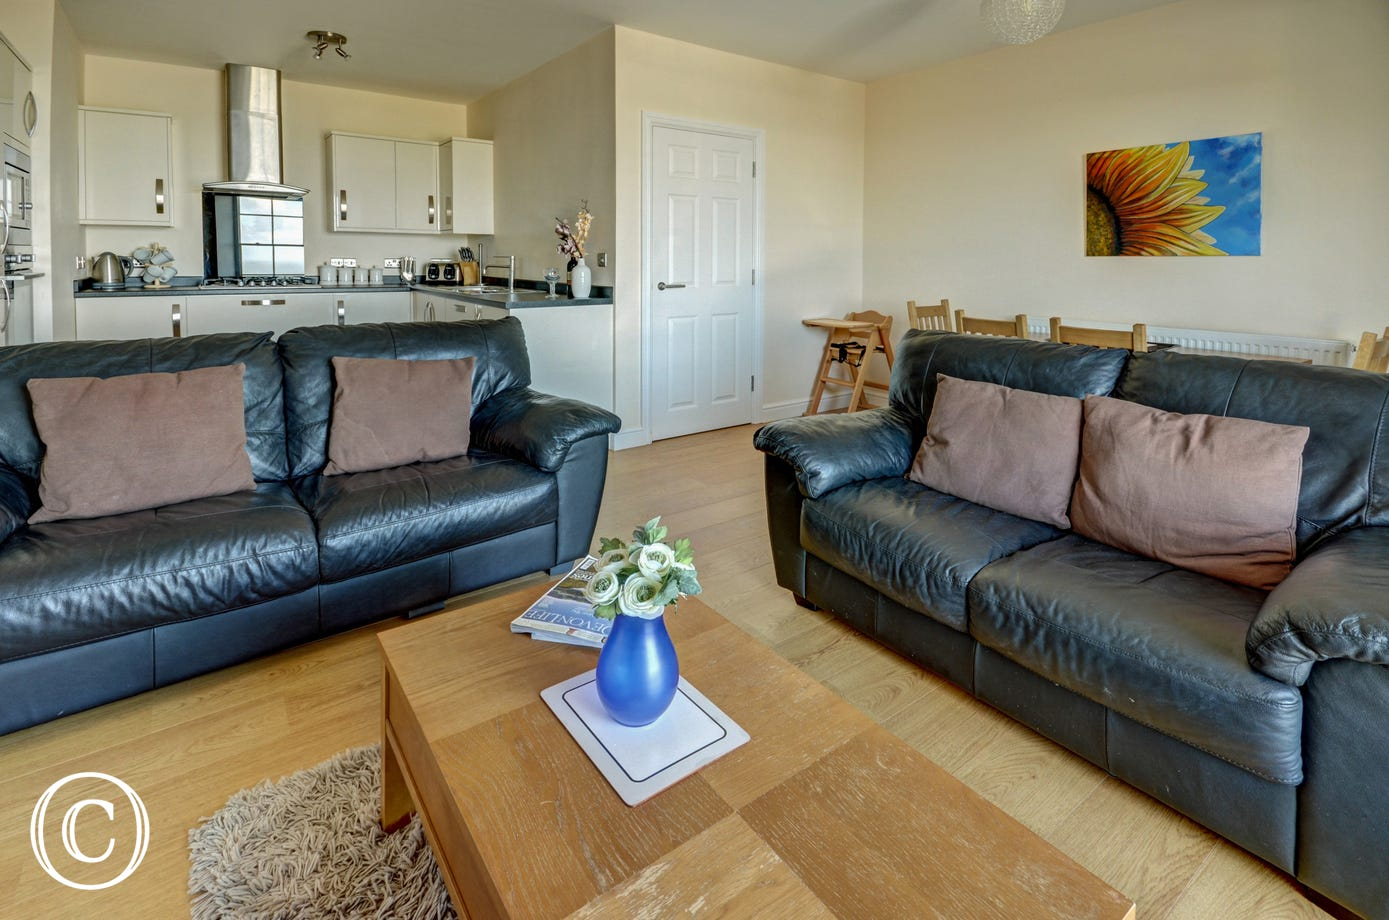 Comfy leather sofas complement the oak style flooring in the sitting area